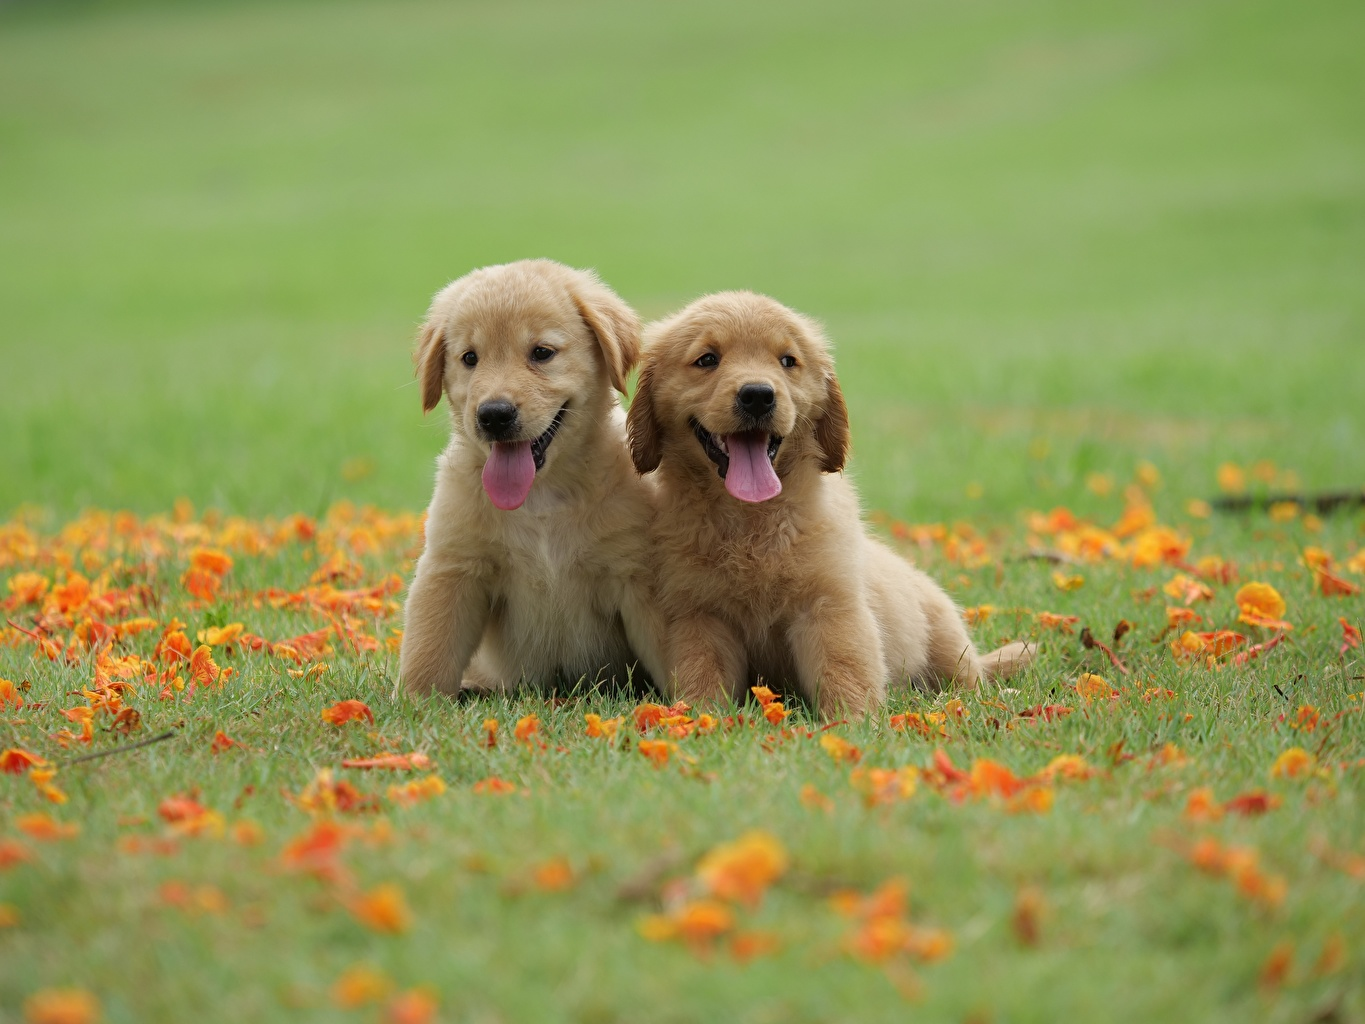 Pictures Puppy Golden Retriever Dogs Two Tongue Grass Animals